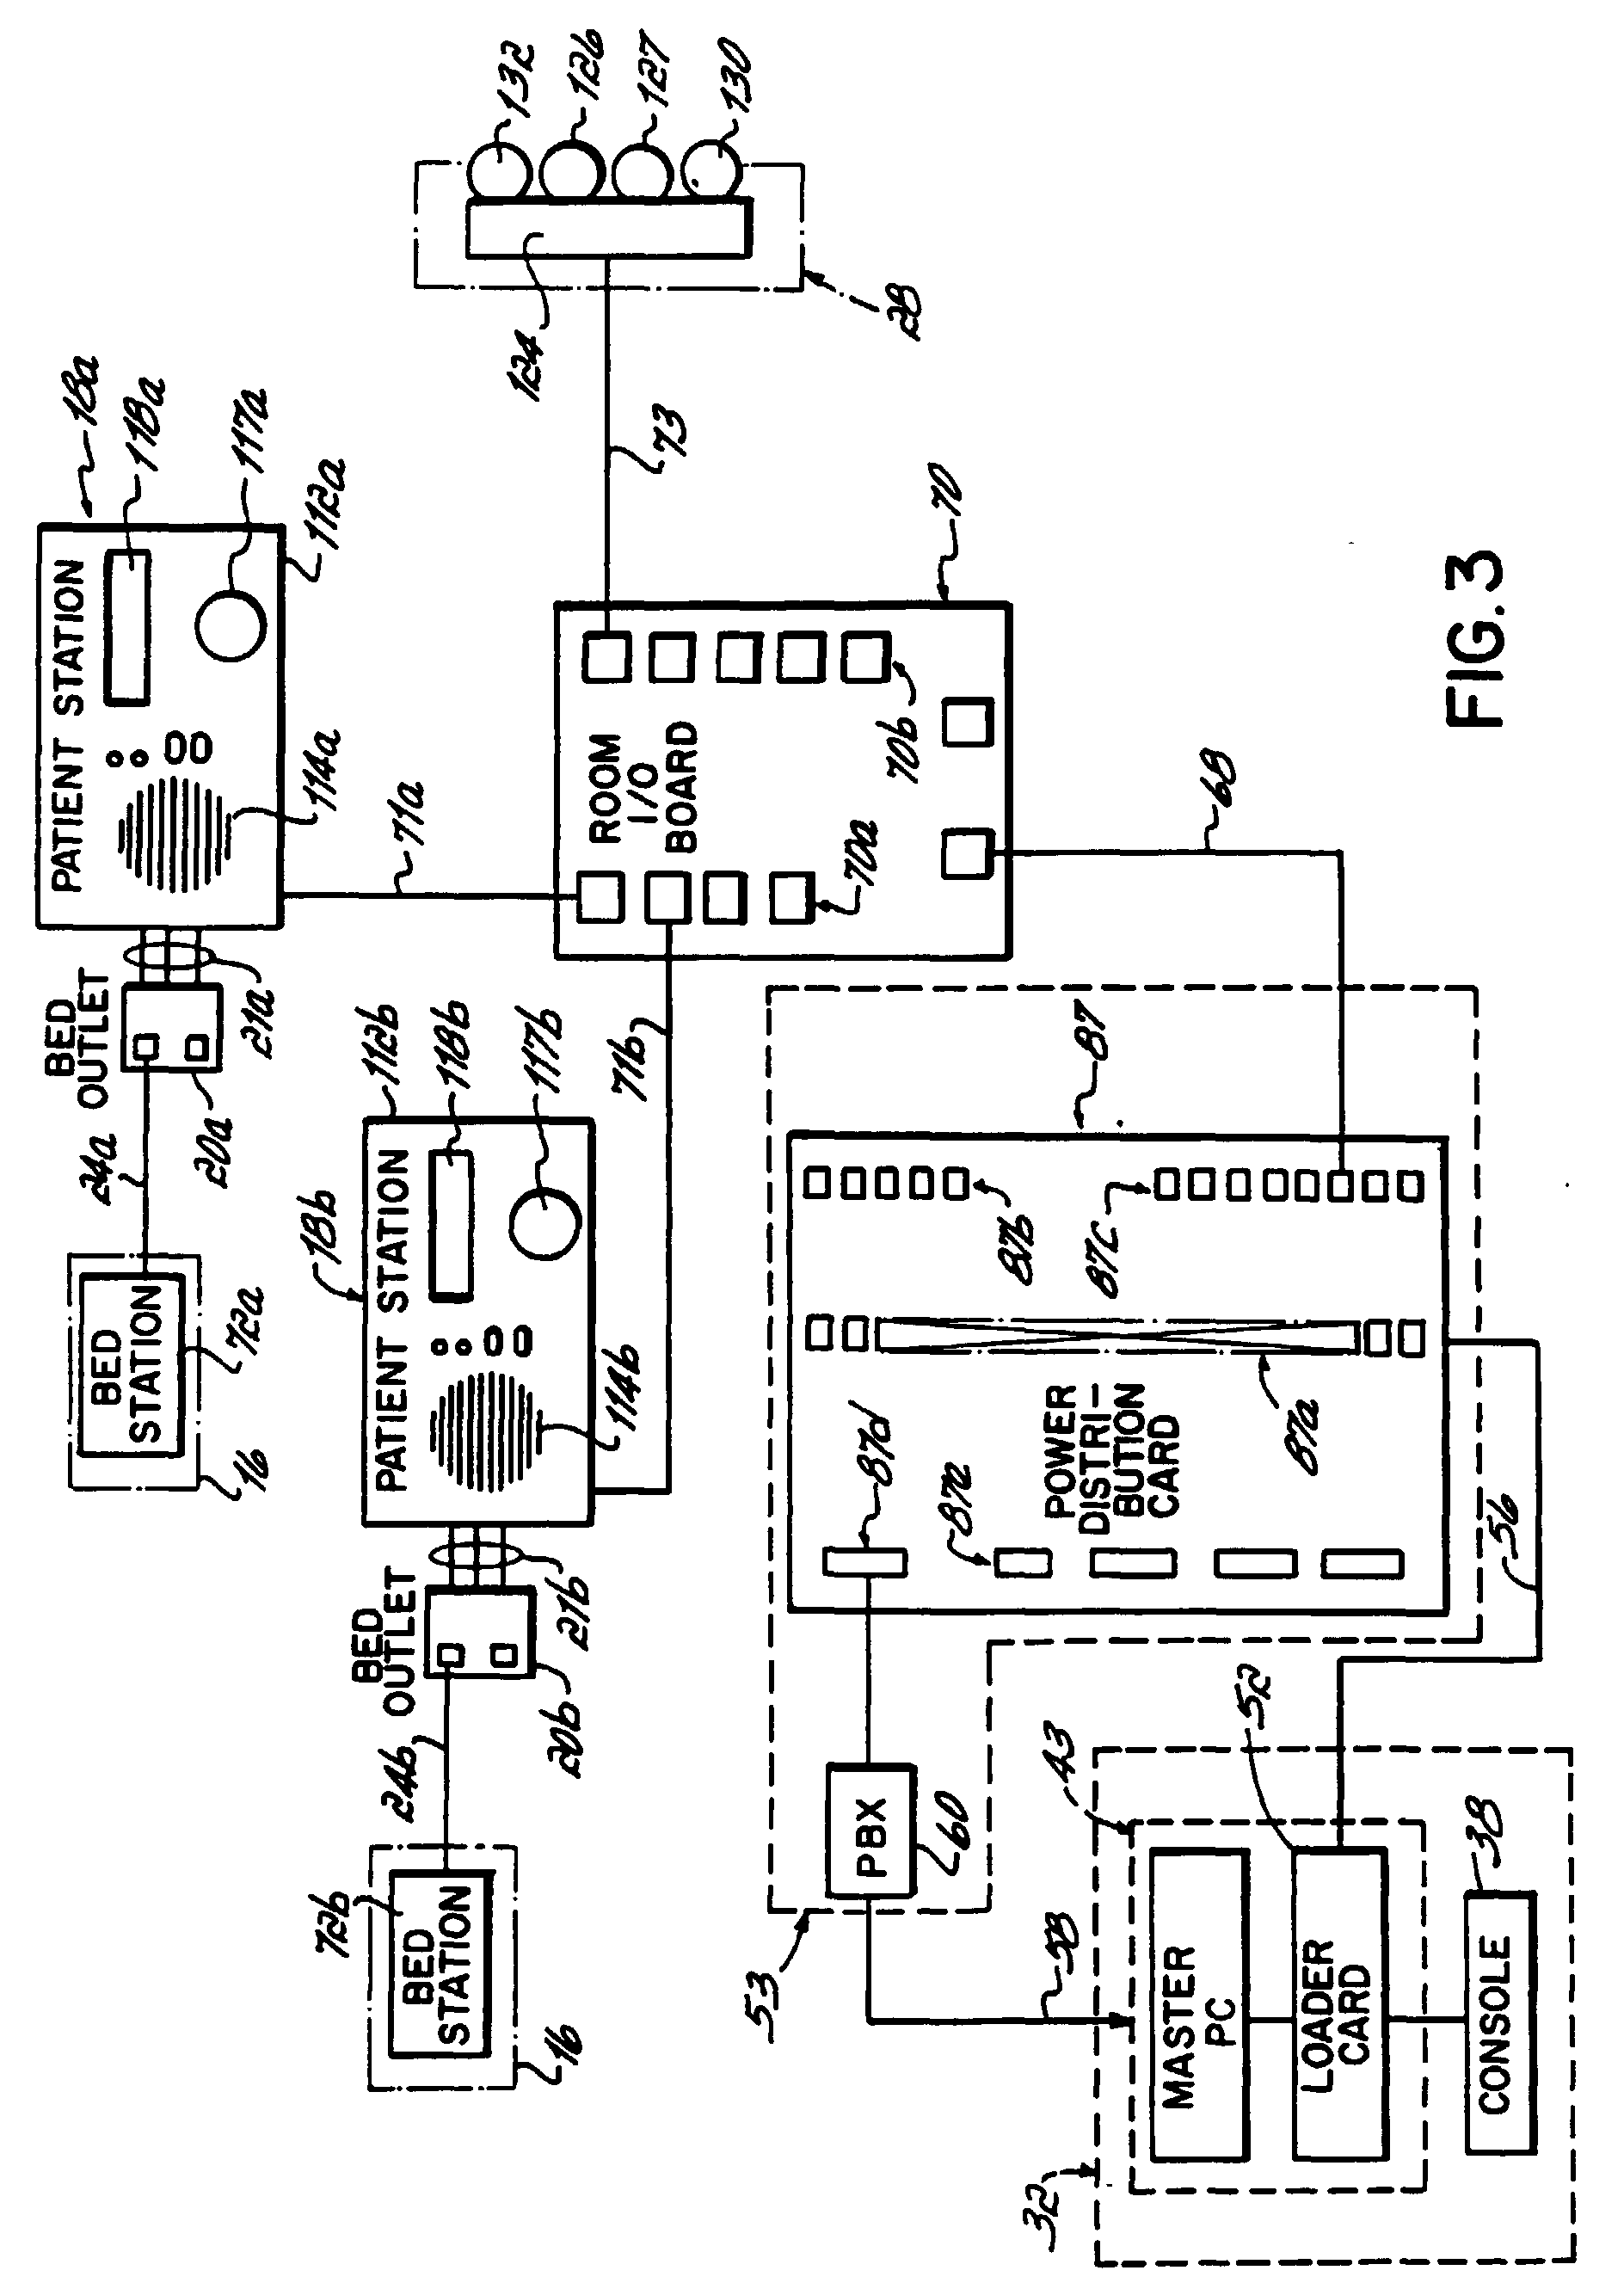 Room Monitoring Wiring Diagram